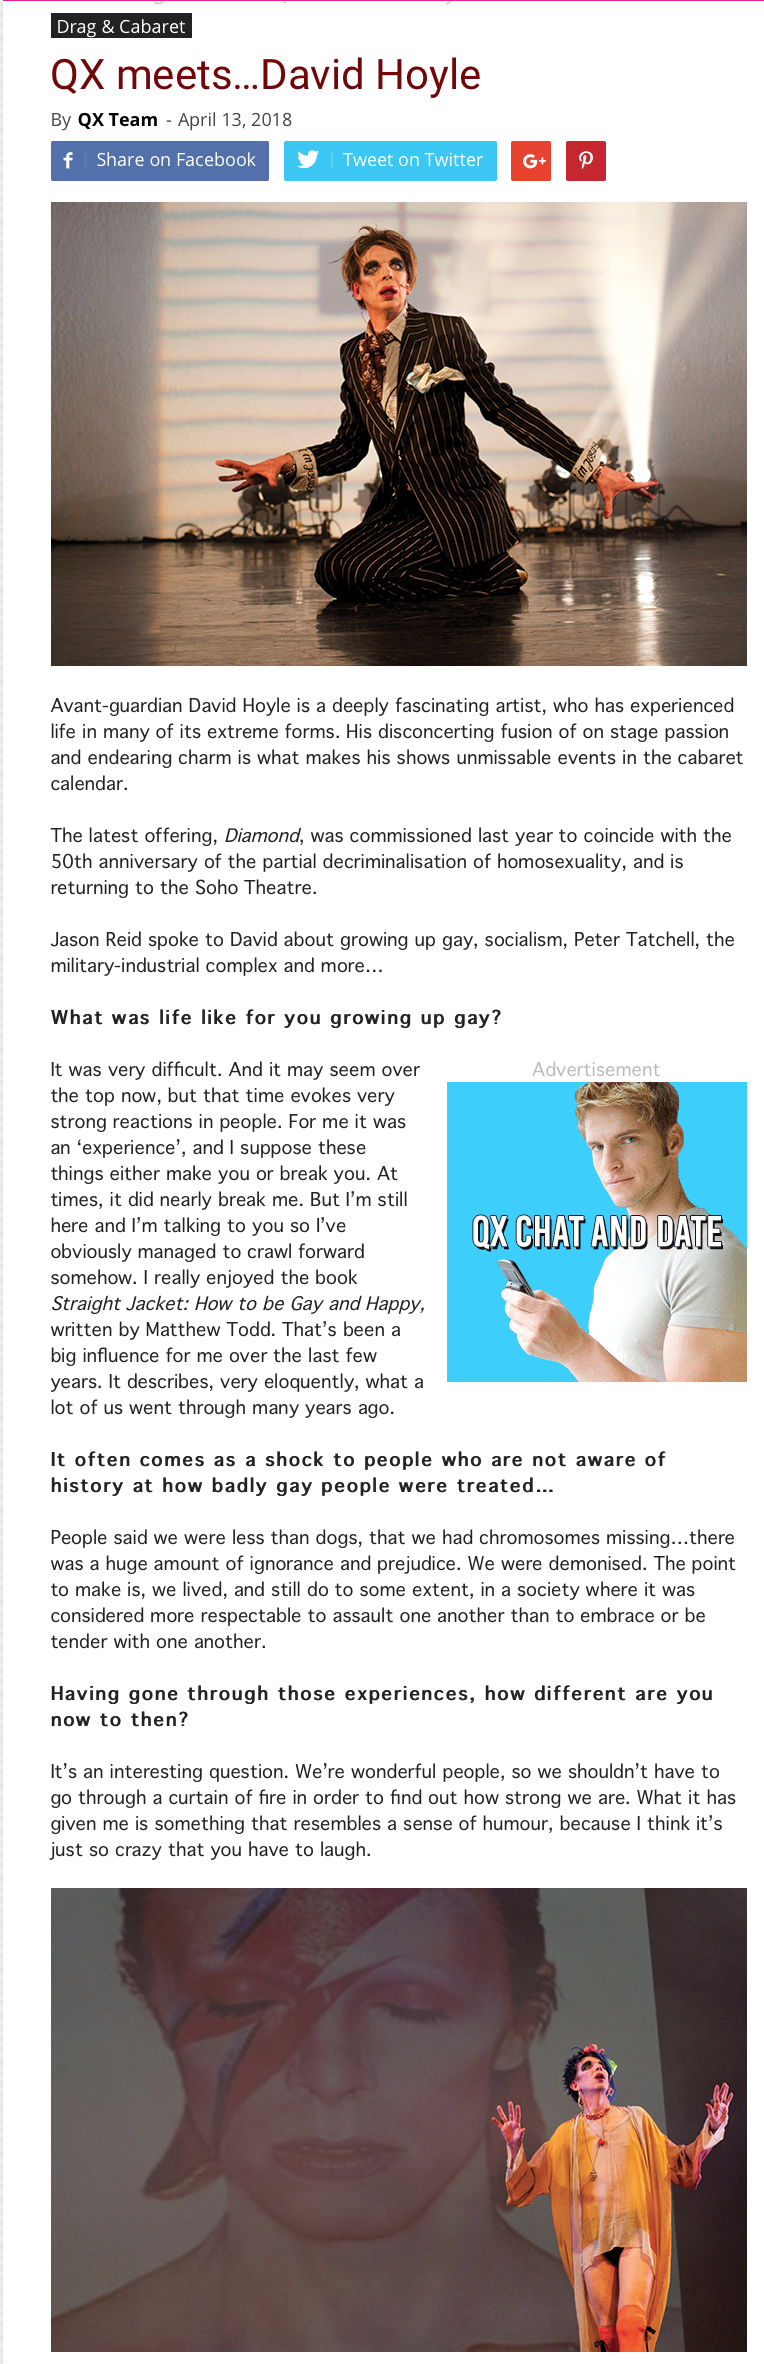 QX-DAVID-DIAMOND.png